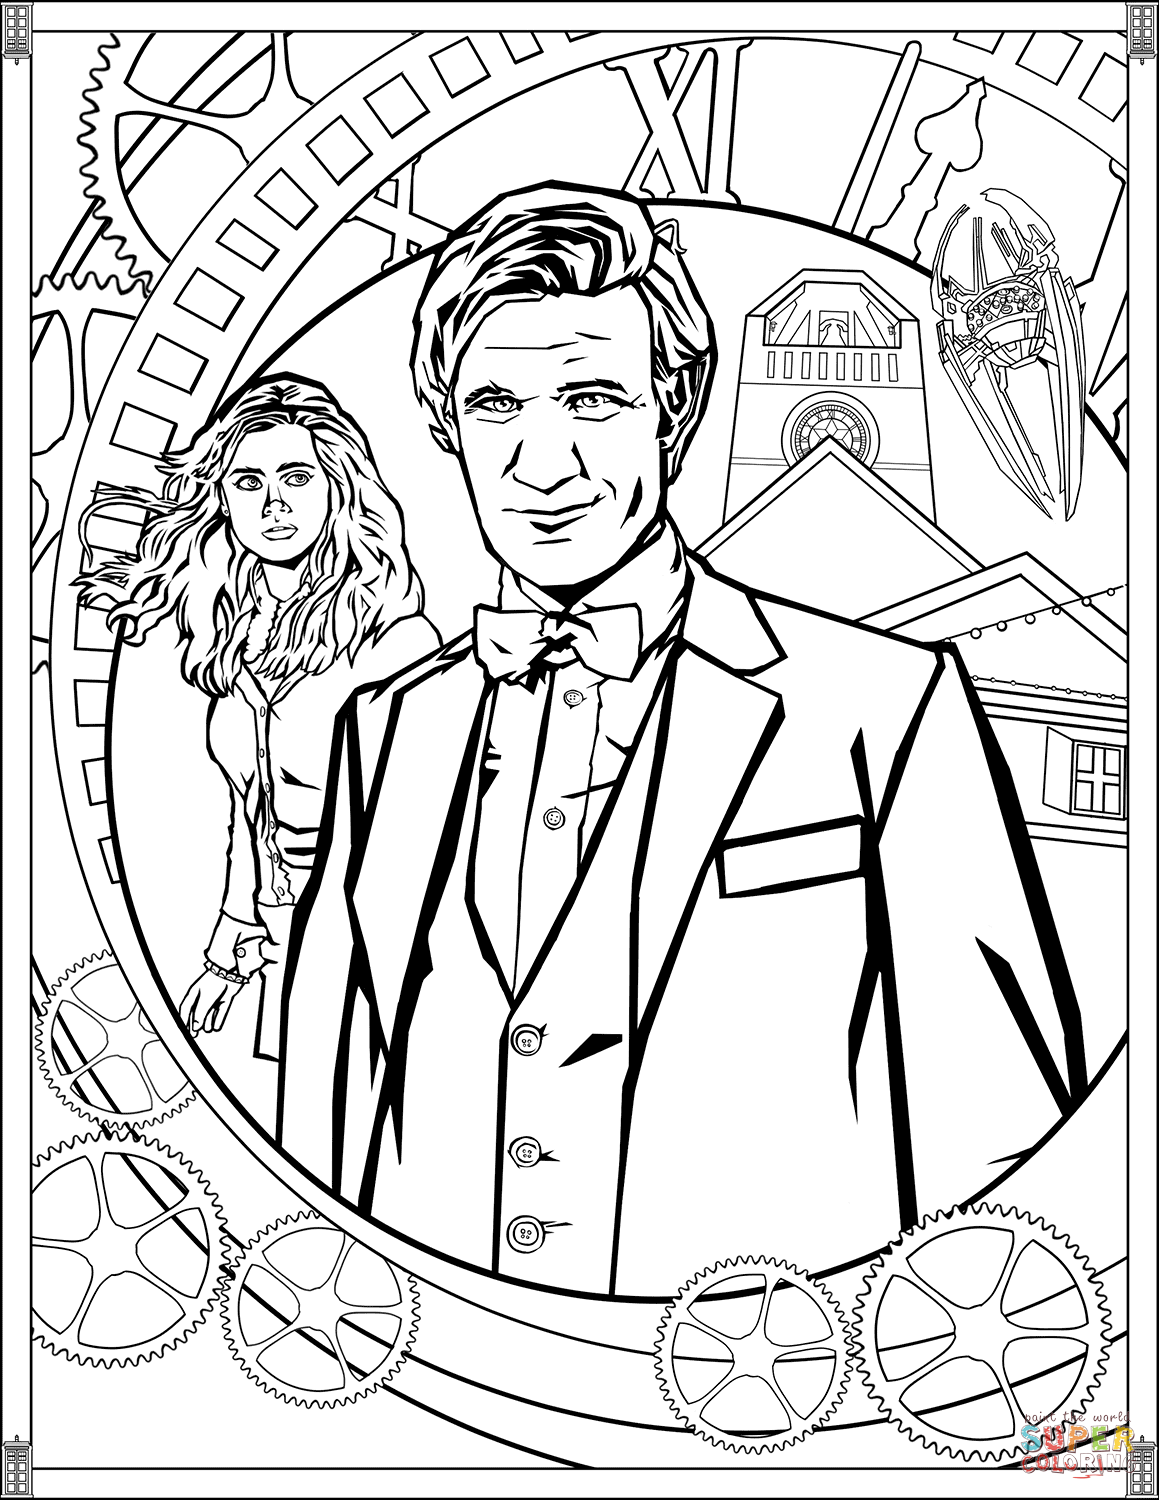 colouring pages of doctor eleventh doctor coloring page free printable coloring pages pages of colouring doctor